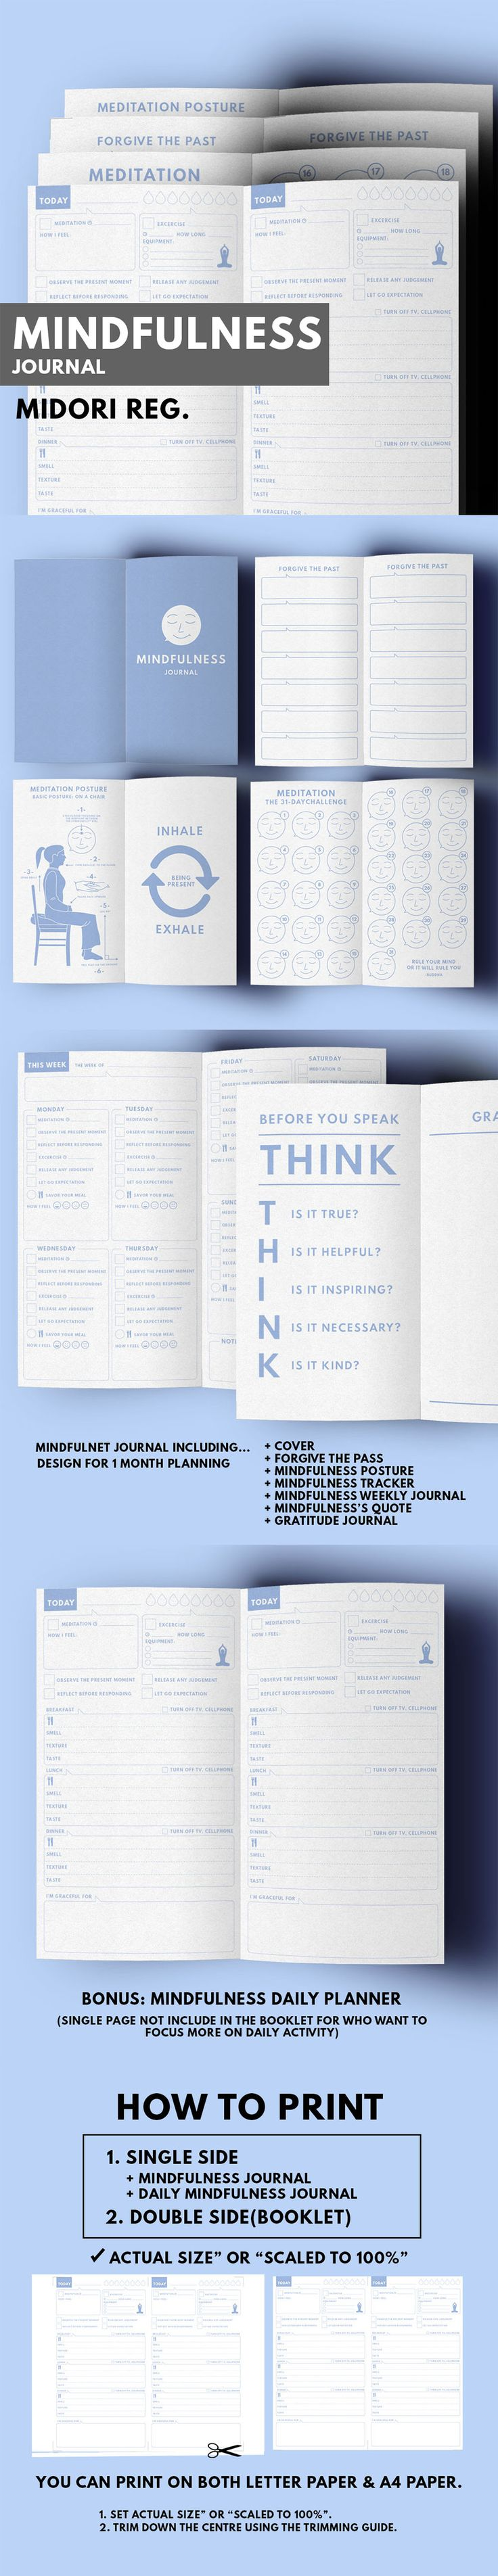 Mindfulness Journal ▹ Rule your mind or it will Rule you! Printable PDF Files  This is mindfulness journal to keep you Happy & Mindful. You can practice gratitude and meditation with this journal  MINDFULNESS JOURNAL INCLUDED ▹ COVER ▹ FORGET THE PASS PAGE ▹ MEDITATION POSTURE PAGE ▹ MINDFULNESS TRACKER ▹ MINDFULNESS WEEKLY JOURNAL ▹ MINDFULNESS'S QUOTE ▹ GRATITUDE JOURNAL  +BONUS ▹MINDFULNESS DAILY JOURNAL